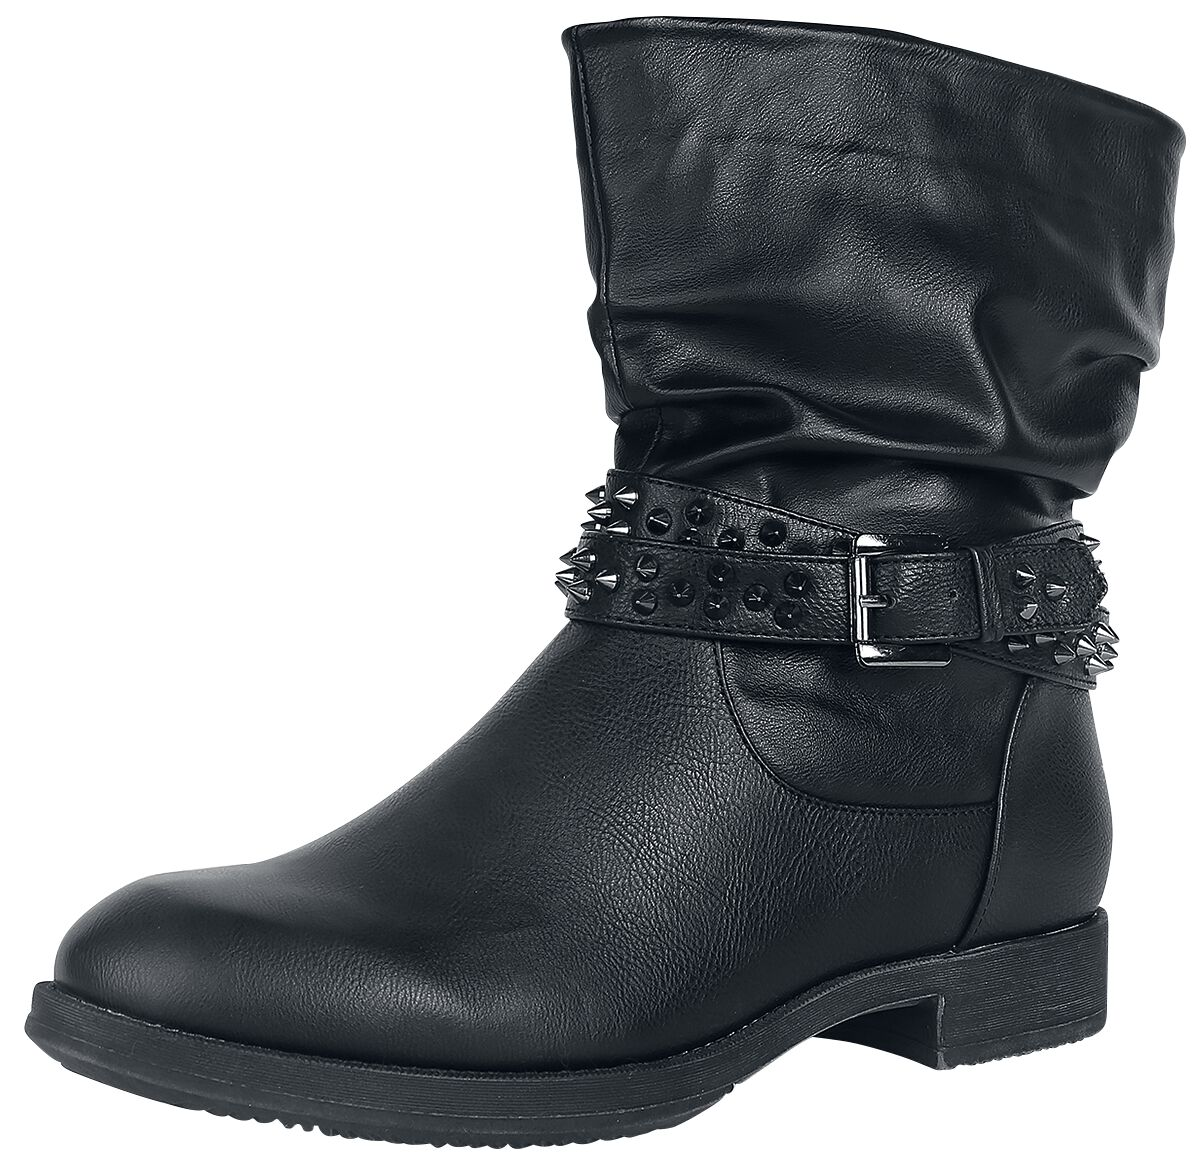 Stiefel für Frauen - Black Premium by EMP Walking On Down The Road Stiefel schwarz  - Onlineshop EMP